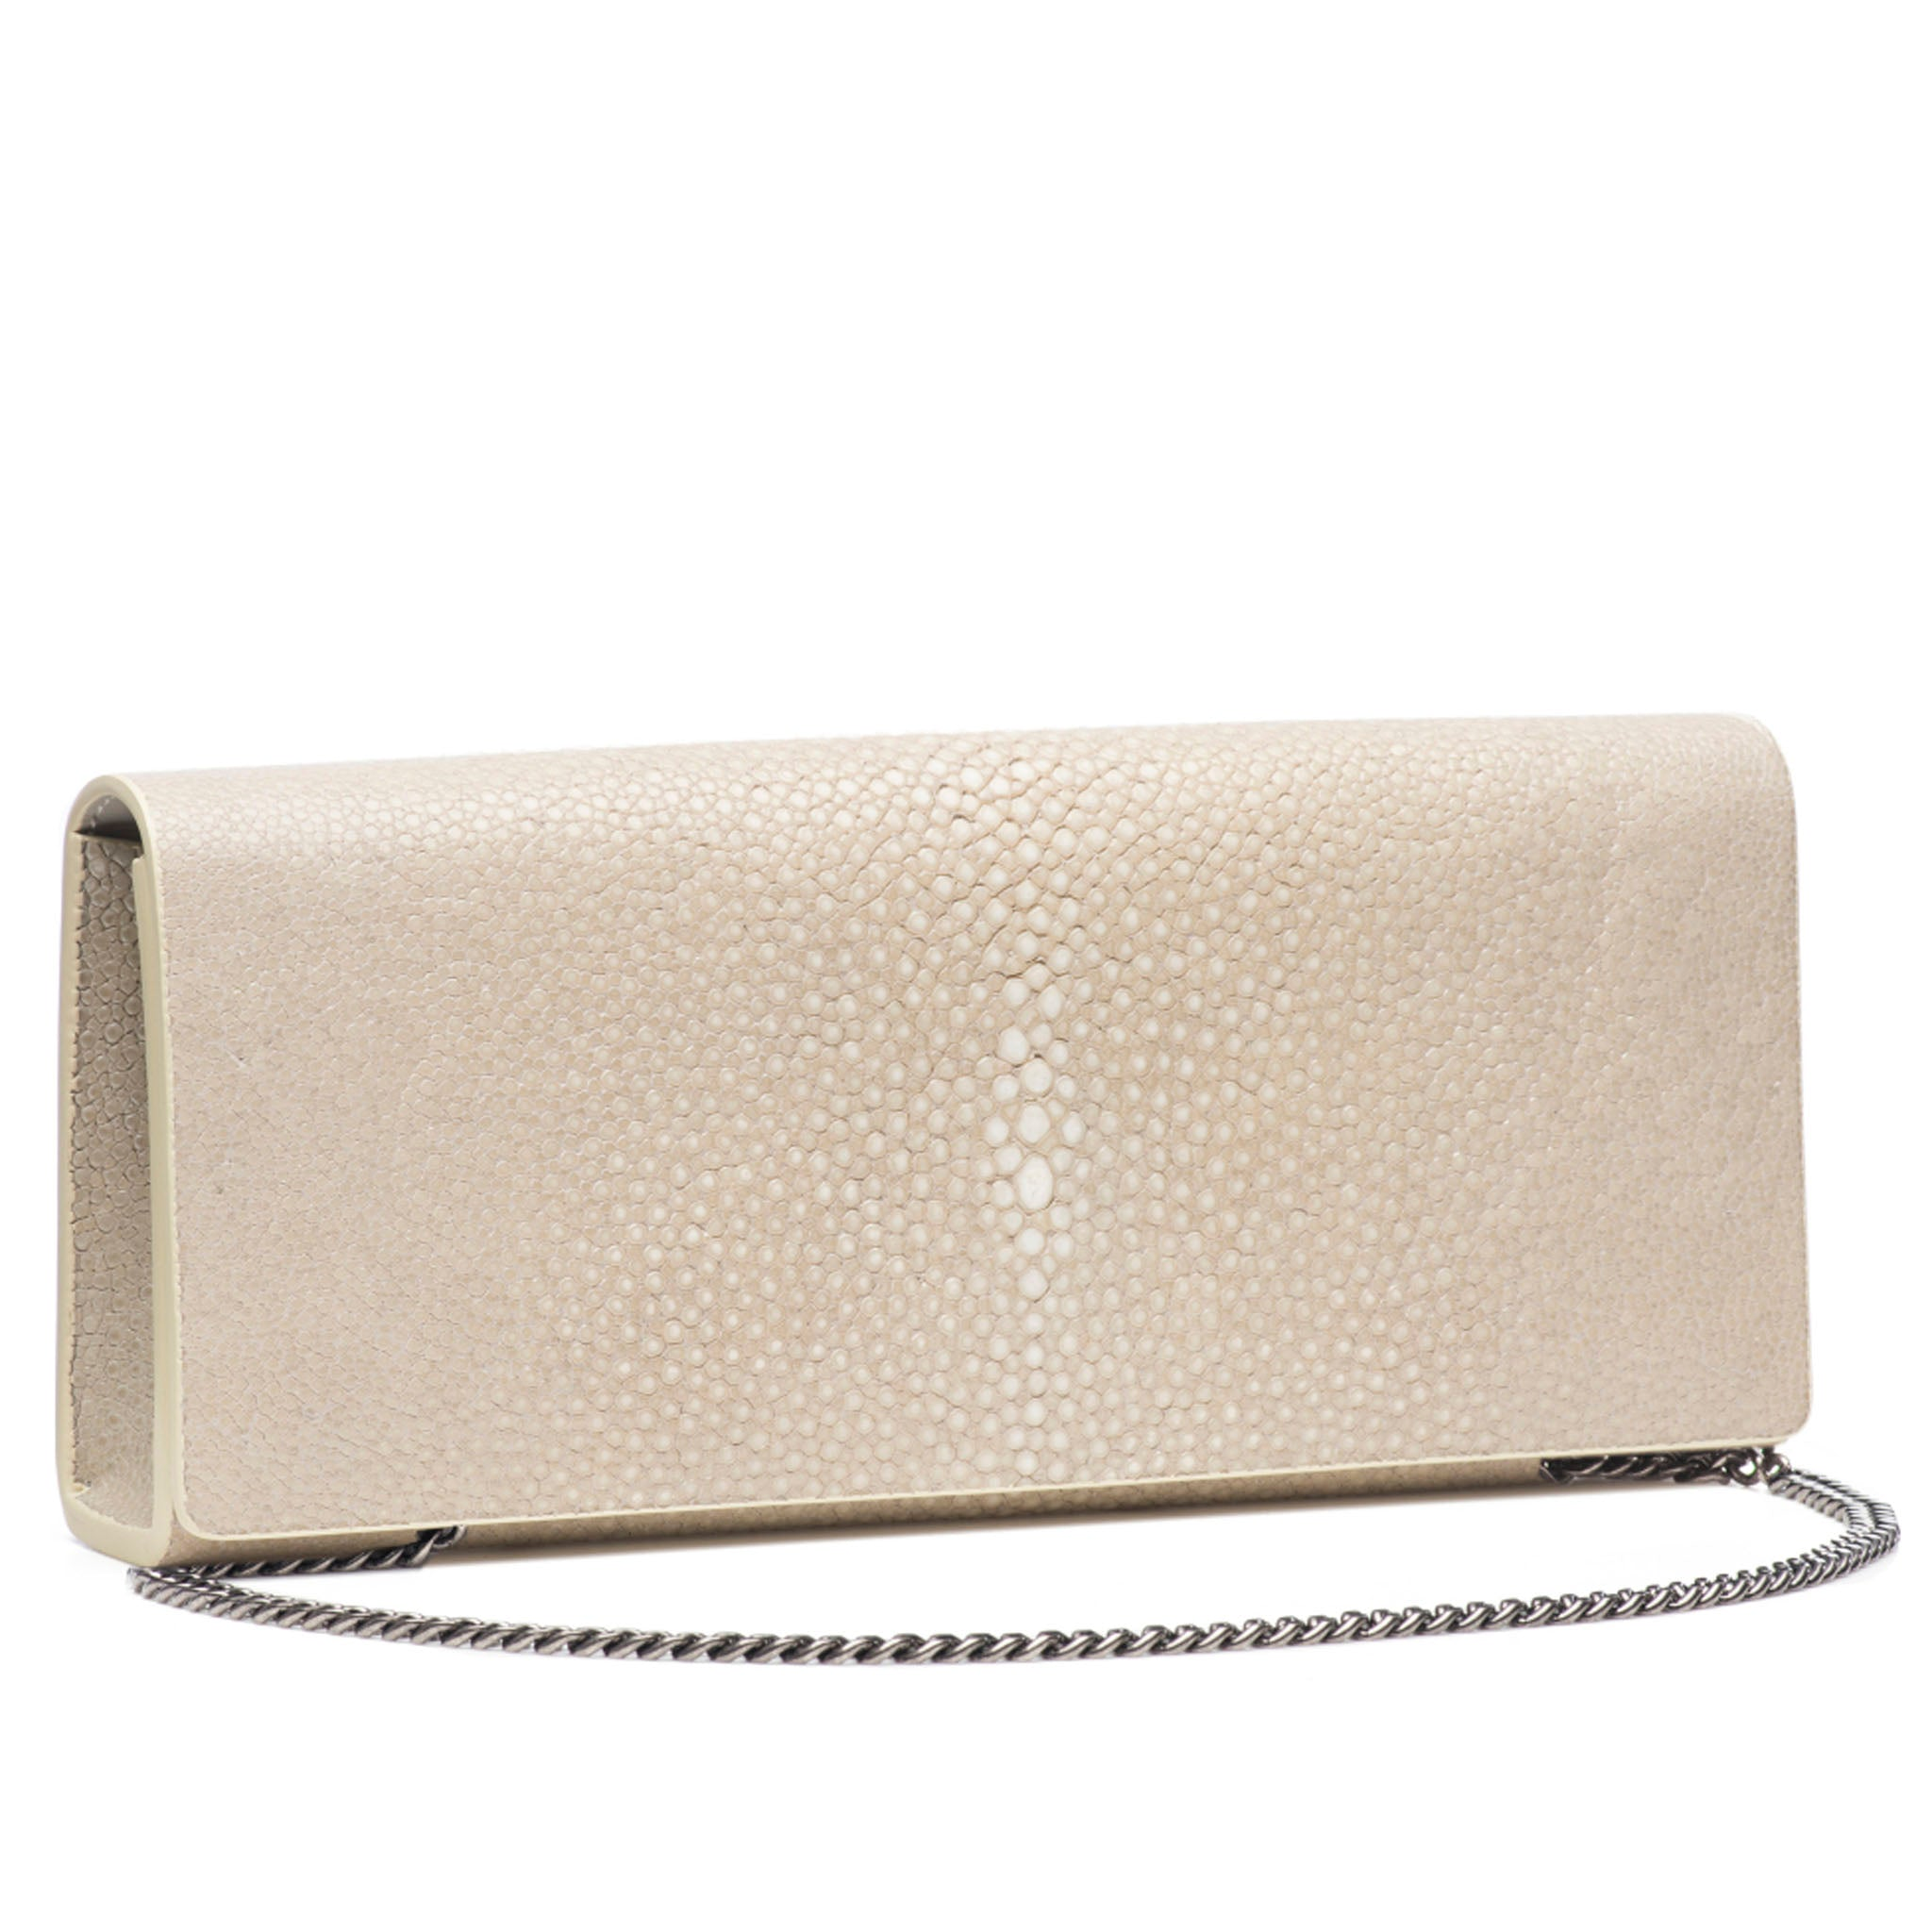 Wheat Color Shagreen Clutch Bag Front View with Chain Cleo - Vivo Direct